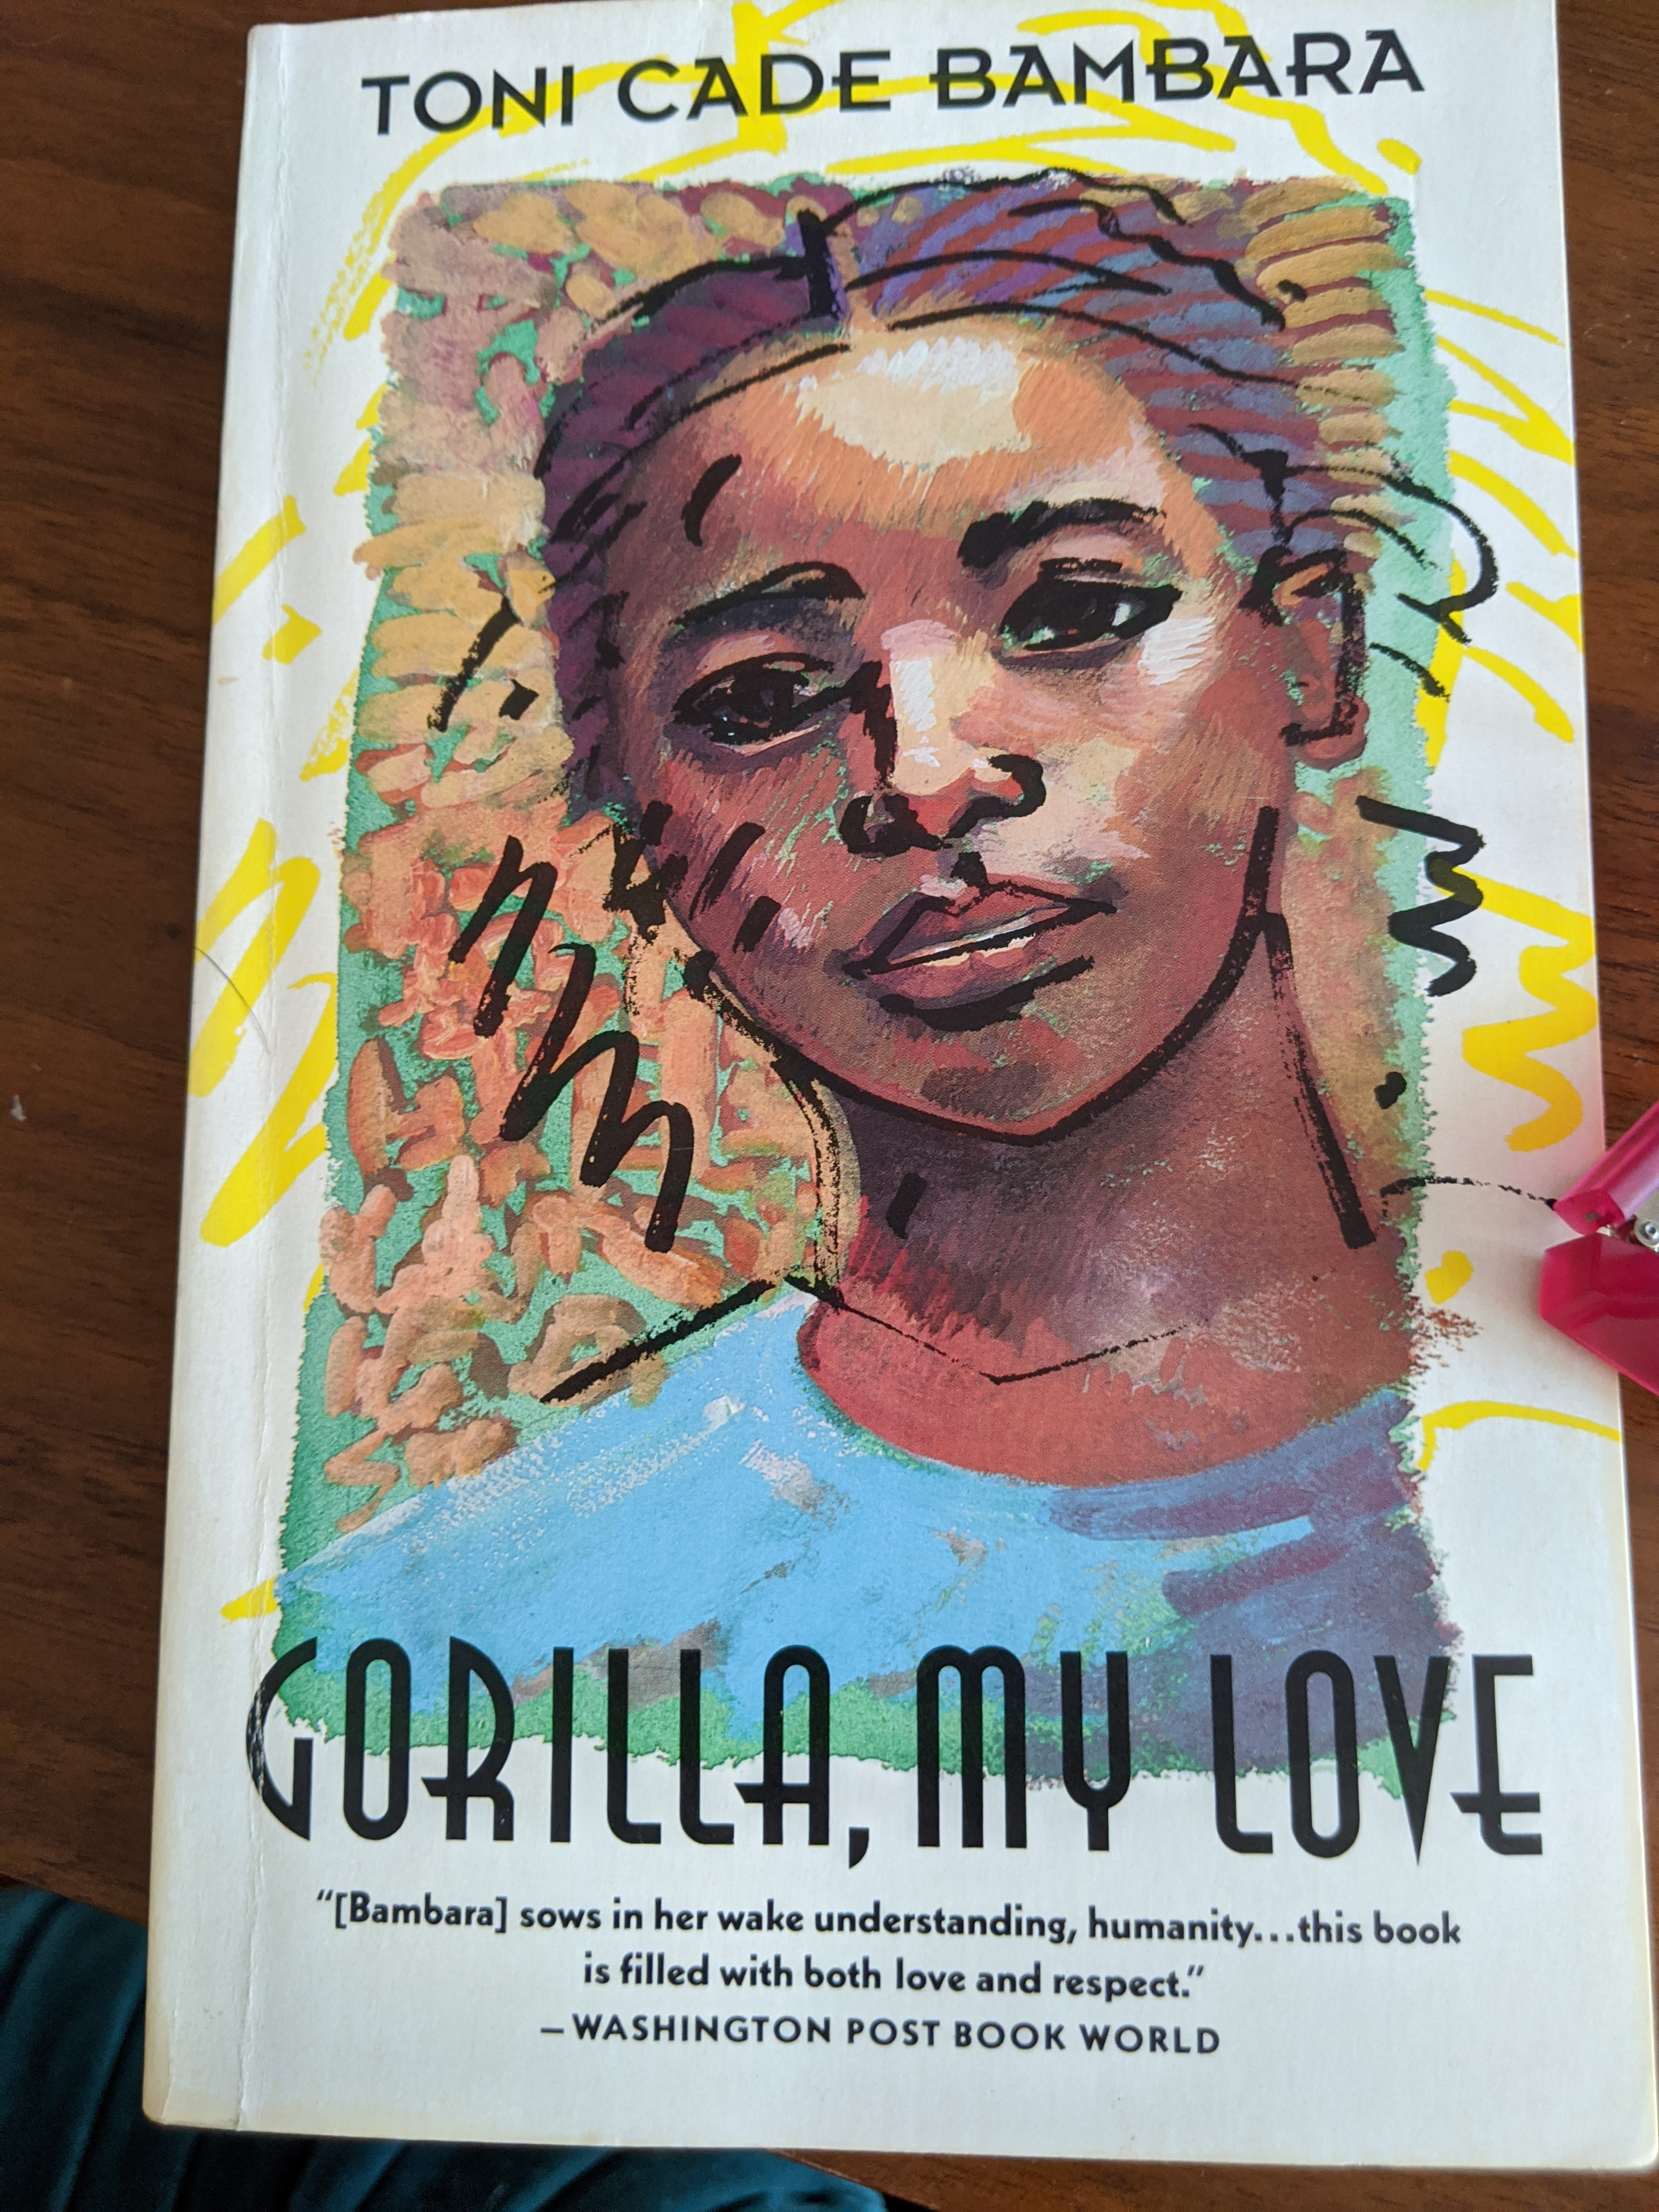 Gorilla my love